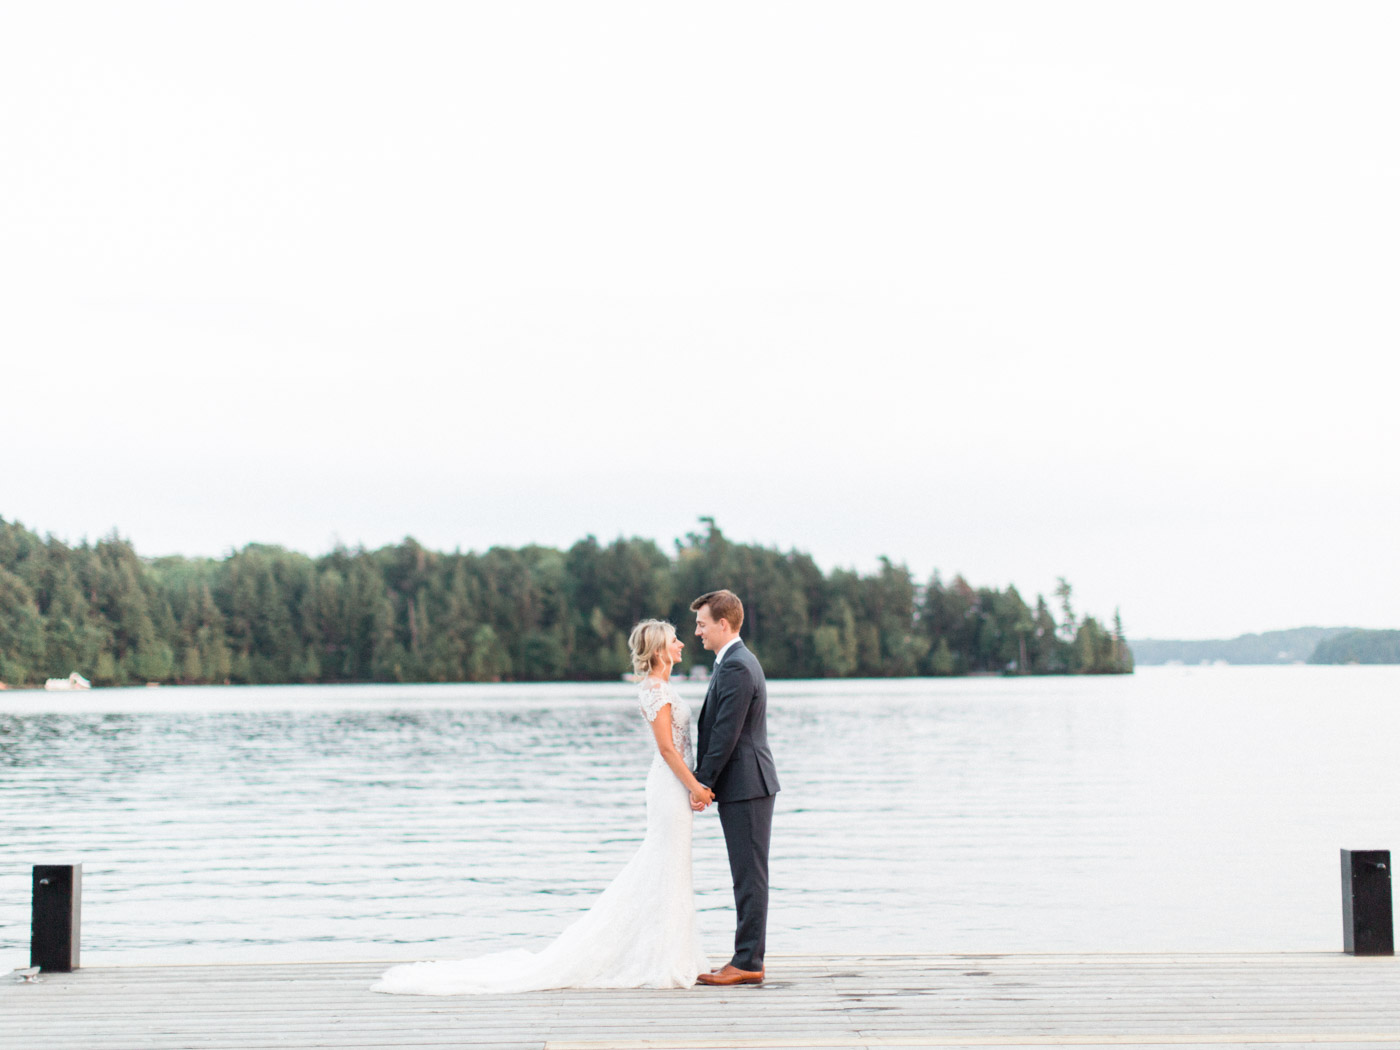 Toronto-Muskoka-wedding-photographer-summery-fun-documentary-the-marriott-rosseau132.jpg